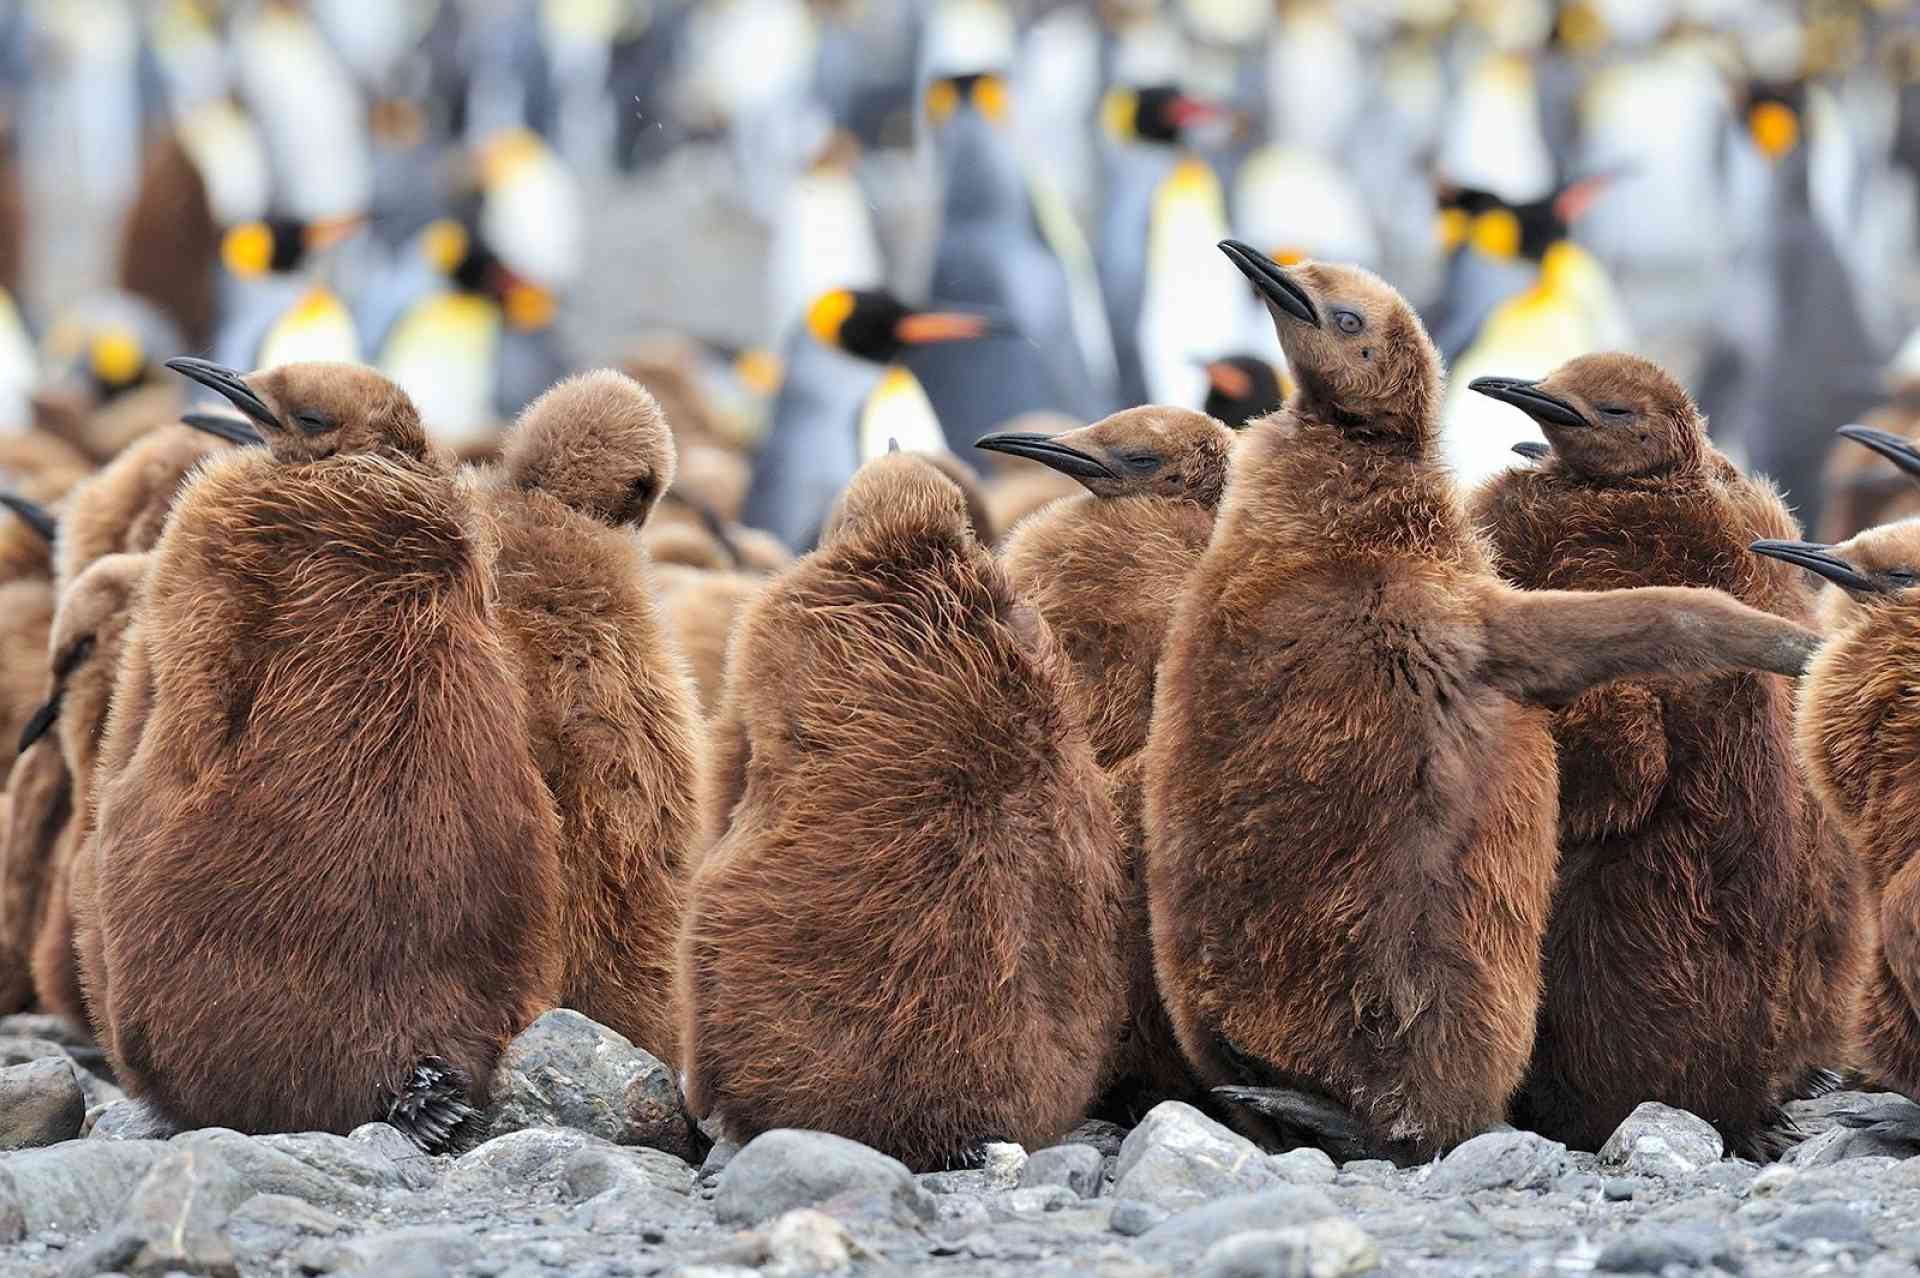 King penguins of Fortuna Bay, South Georgia by Martin van Lokven, Oceanwide Expeditions